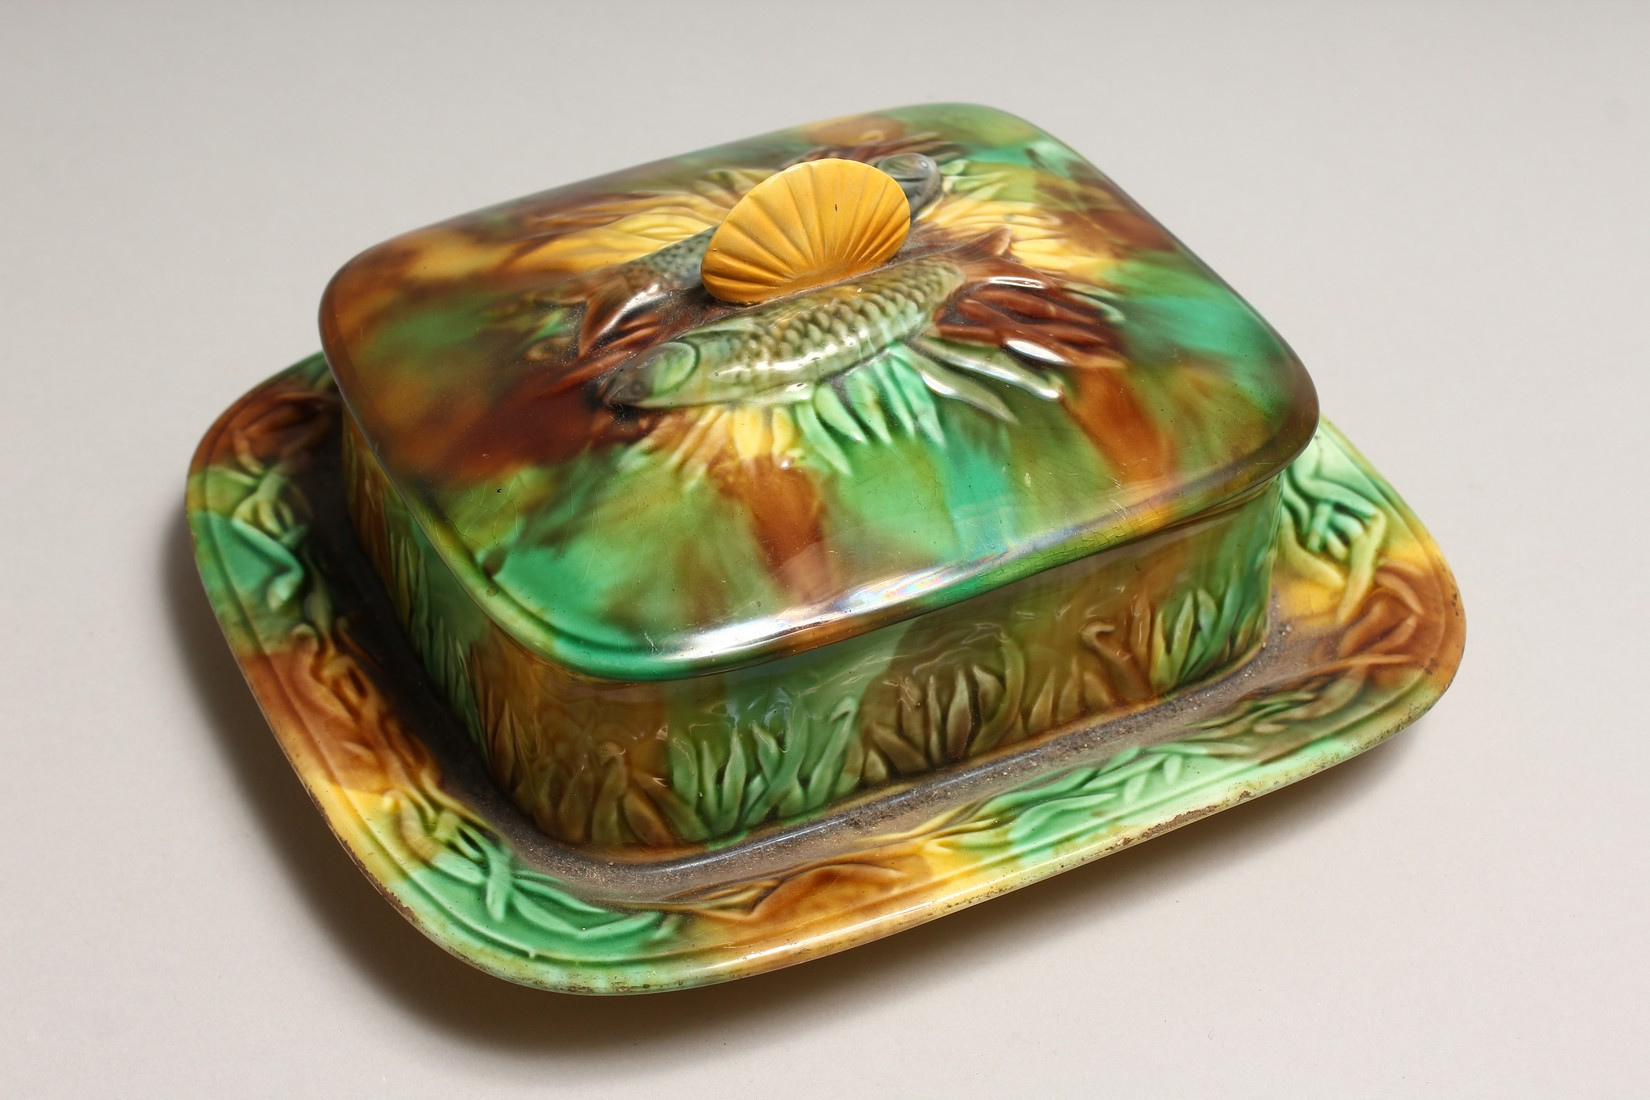 A MAJOLICA SARDINE DISH AND COVER, green and brown glaze with moulded decoration and shell handle. - Image 2 of 4